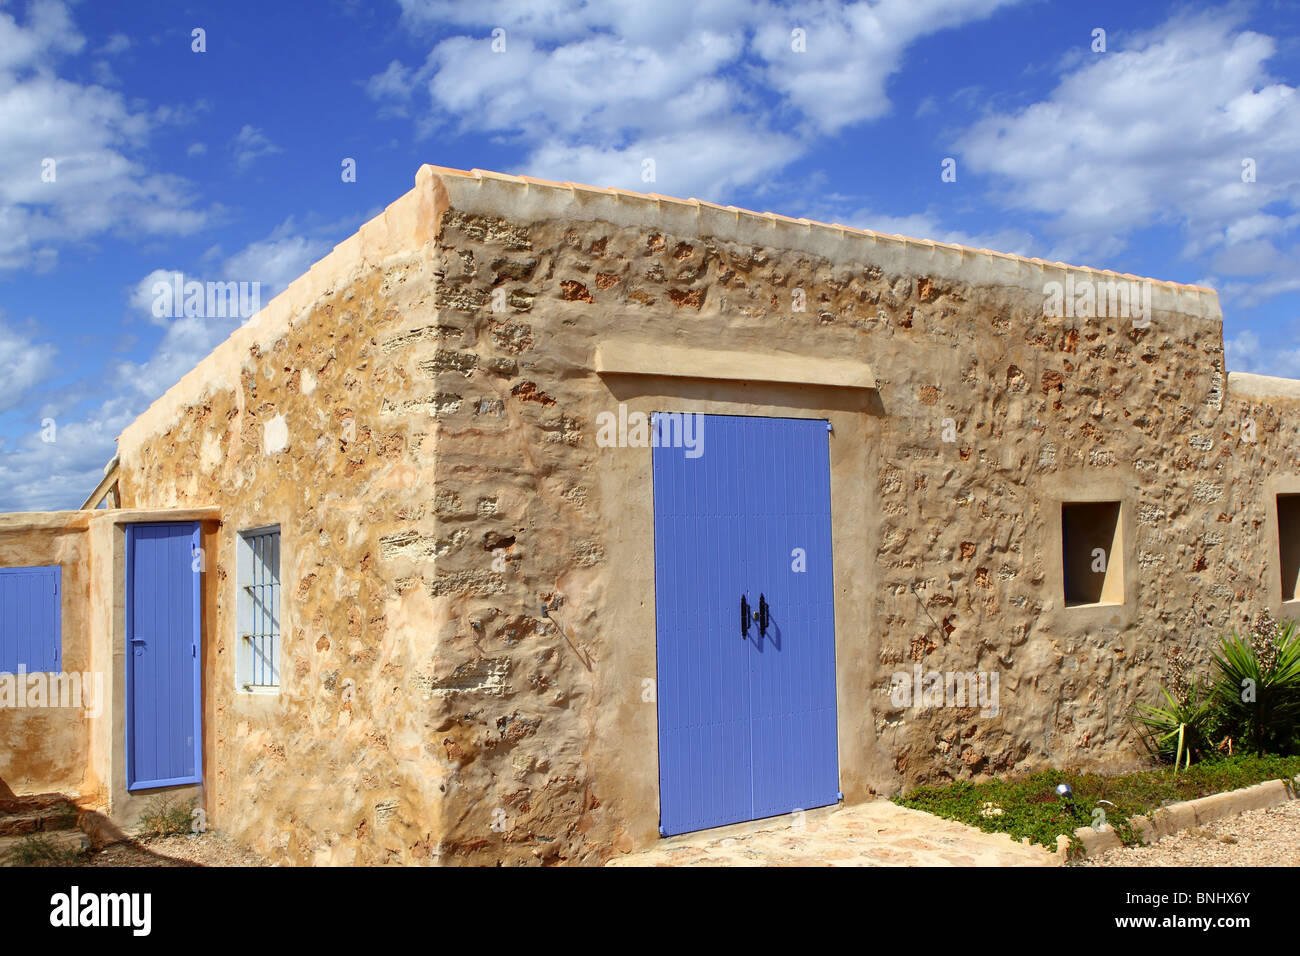 stone house masonry blue sky door windows Formentera Balearic - Stock Image